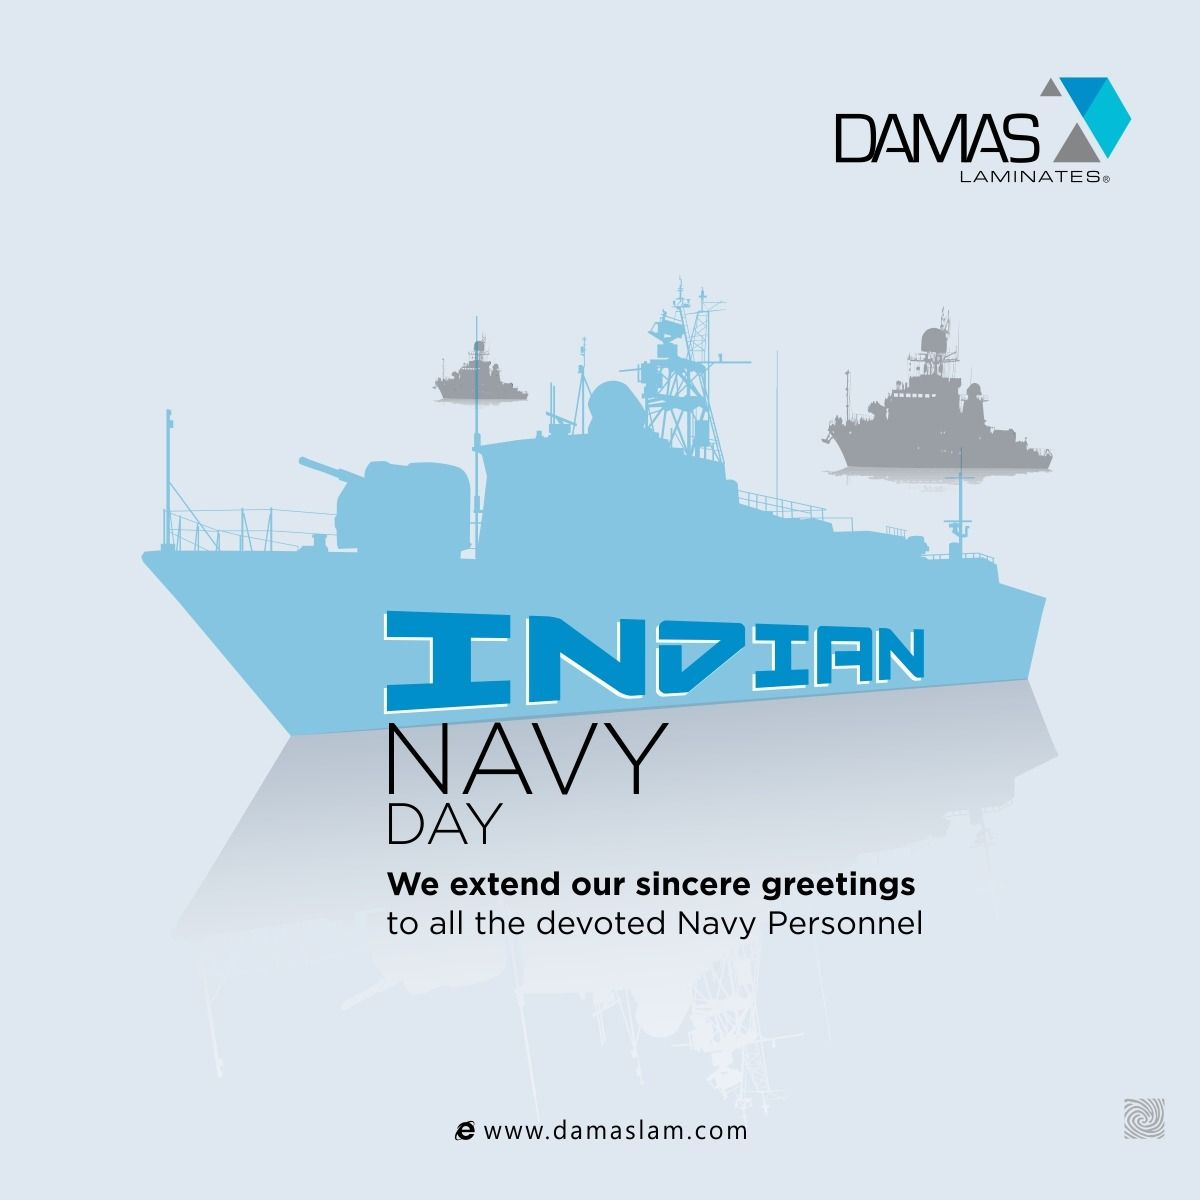 We Extend Our Sincere Greetings To All The Devoted Navy Personnel Navy Day Of India Damas Laminates Laminate Interi Navy Day Indian Navy Day Indian Navy